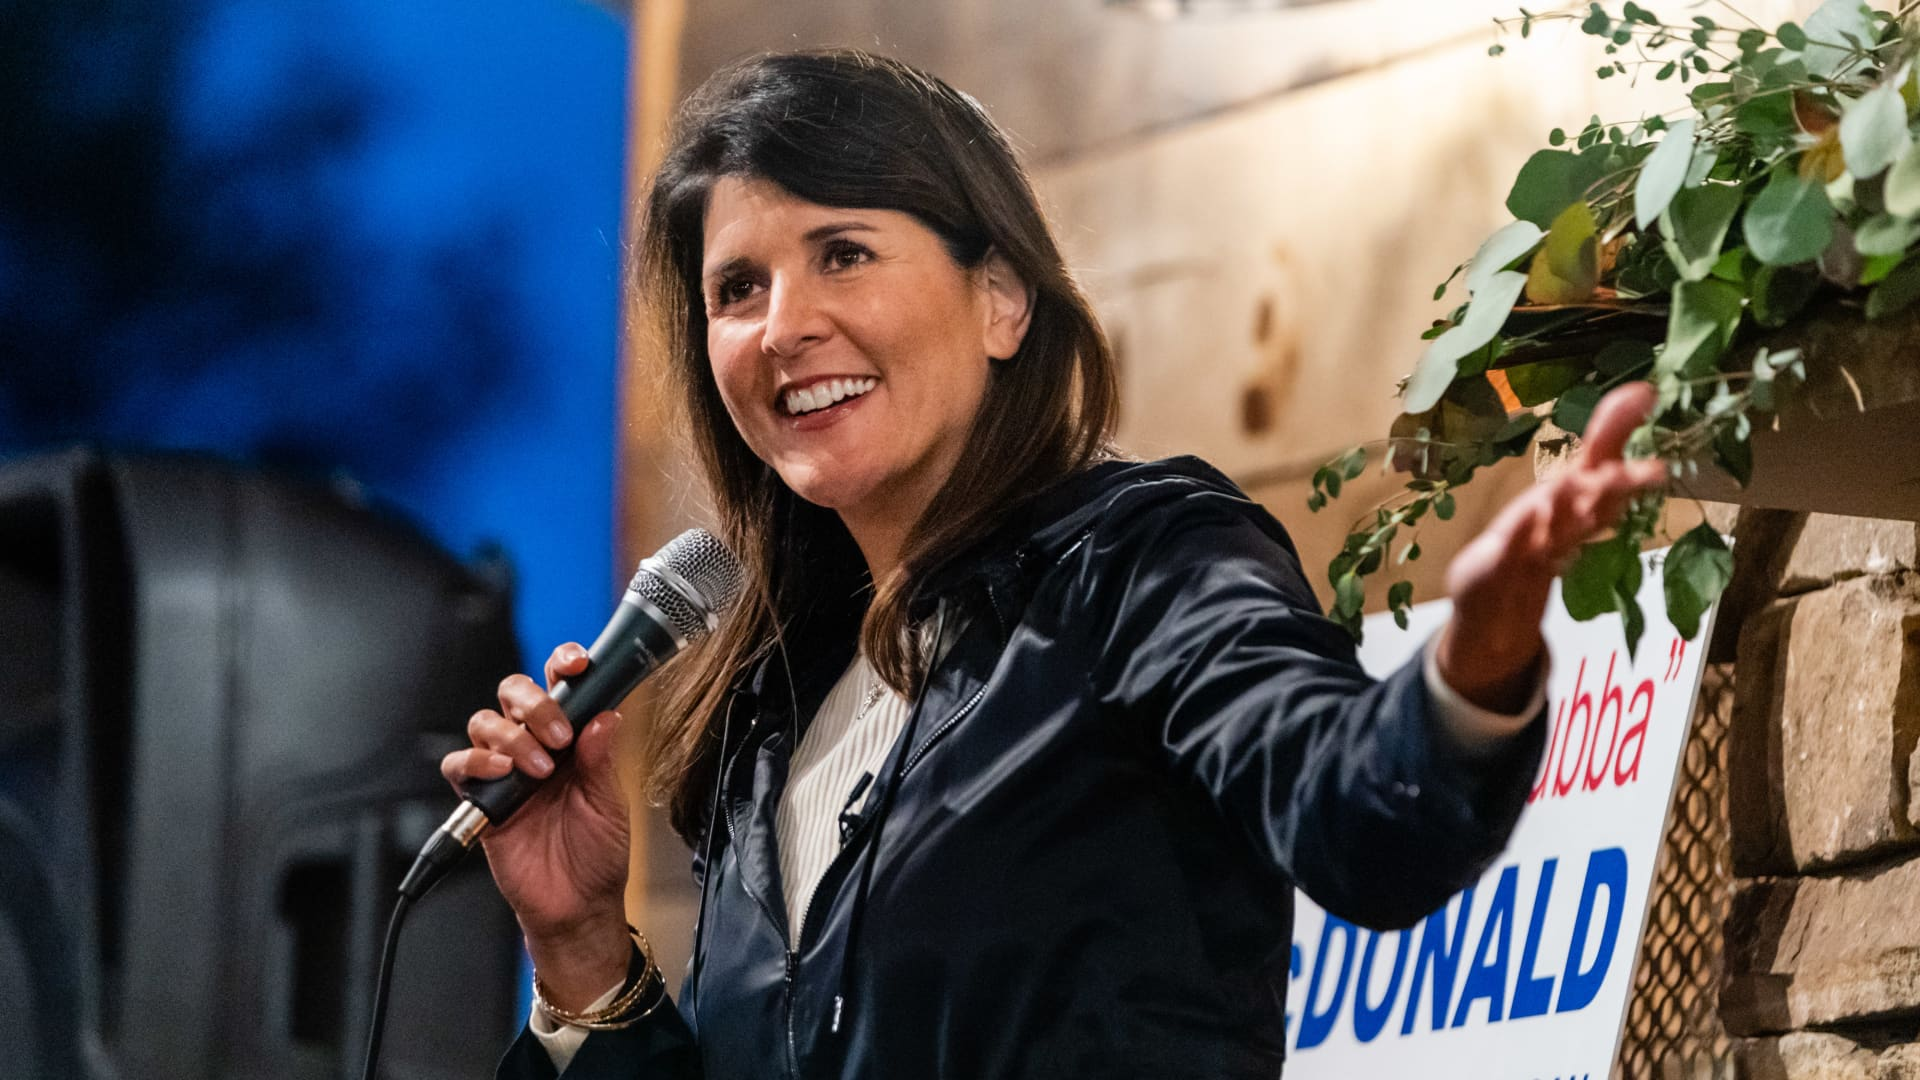 Nikki Haley, former ambassador to the United Nations, speaks at a campaign rally for Senators David Perdue and Kelly Loeffler in Cumming, Georgia, U.S., on Sunday, Dec. 20, 2020.